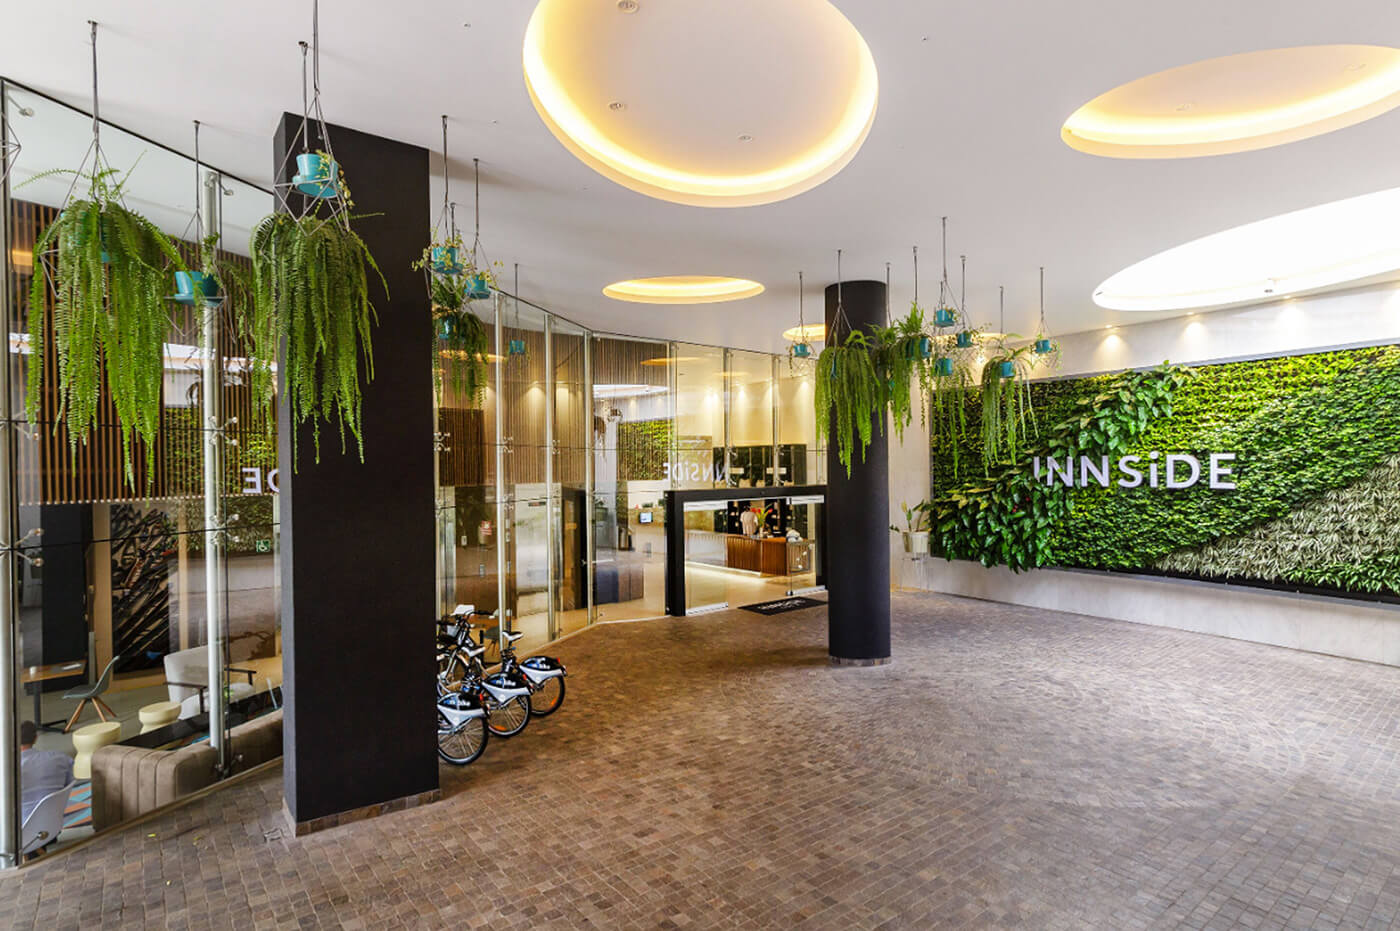 Meliá Hotels International Announces Today the Rebranding Completion ofTRYP Lima Miraflores to INNSIDE Lima Miraflores